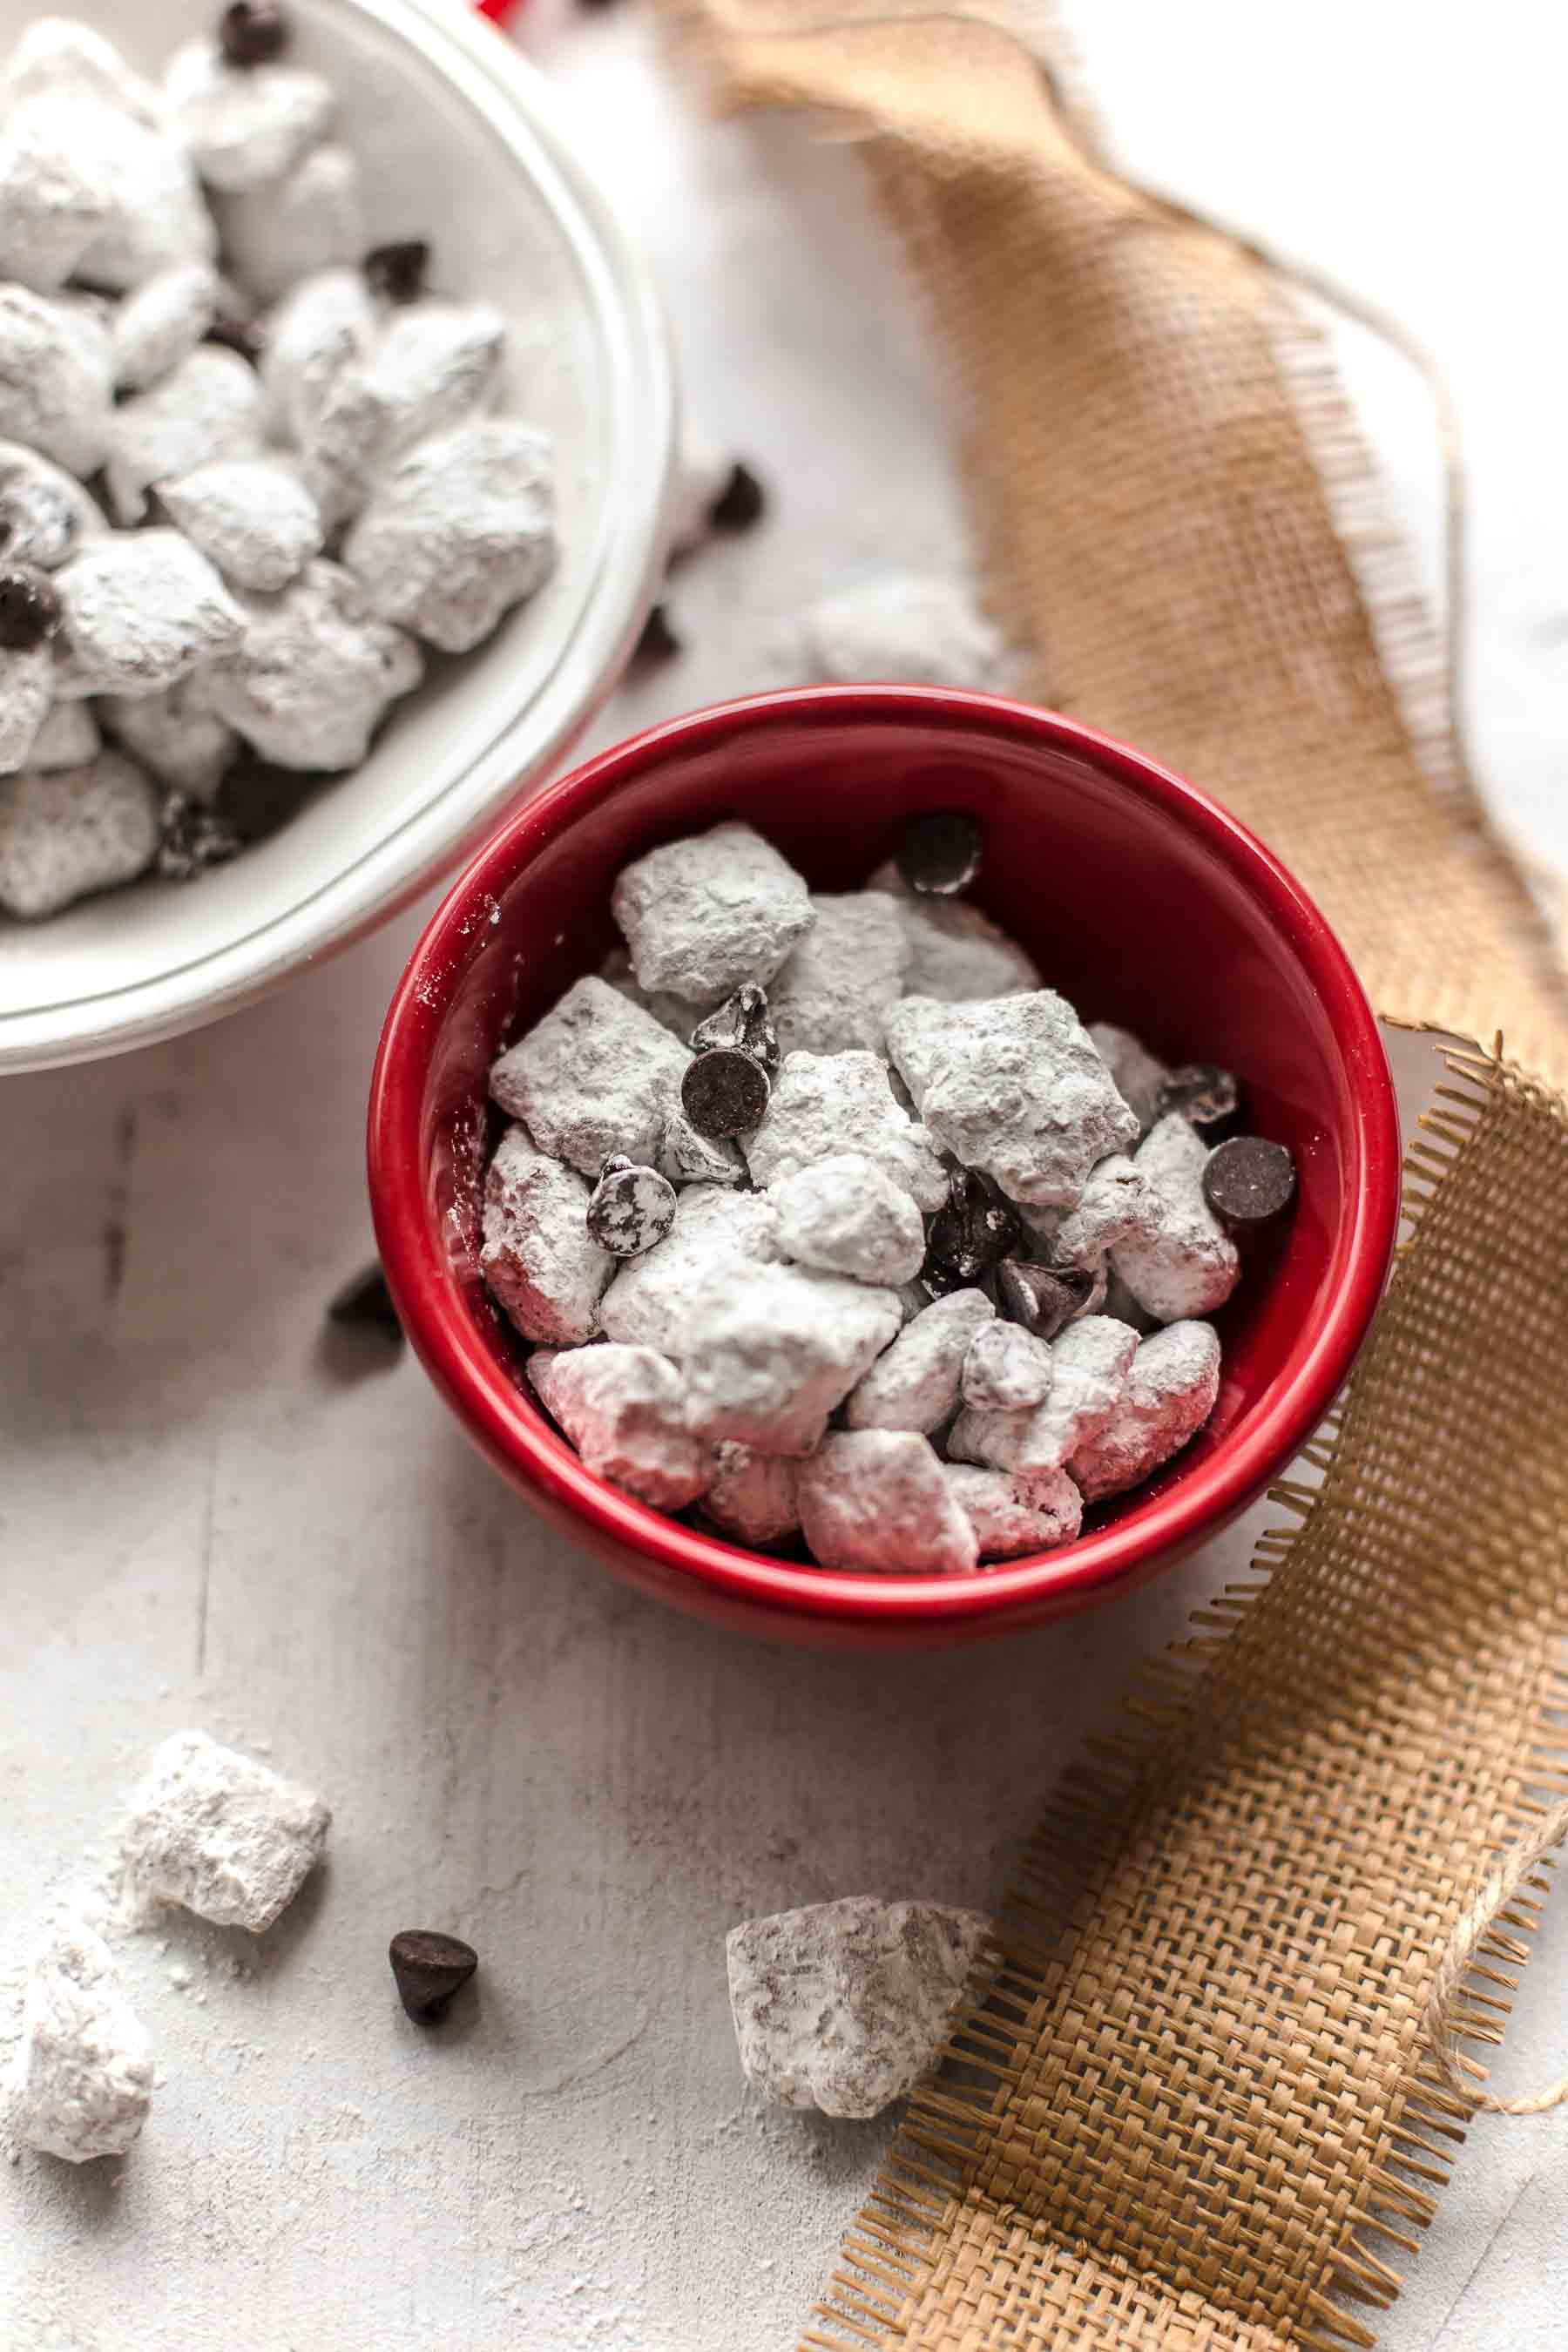 Salted Caramel Puppy Chow Snack Mix The Cookie Rookie Video